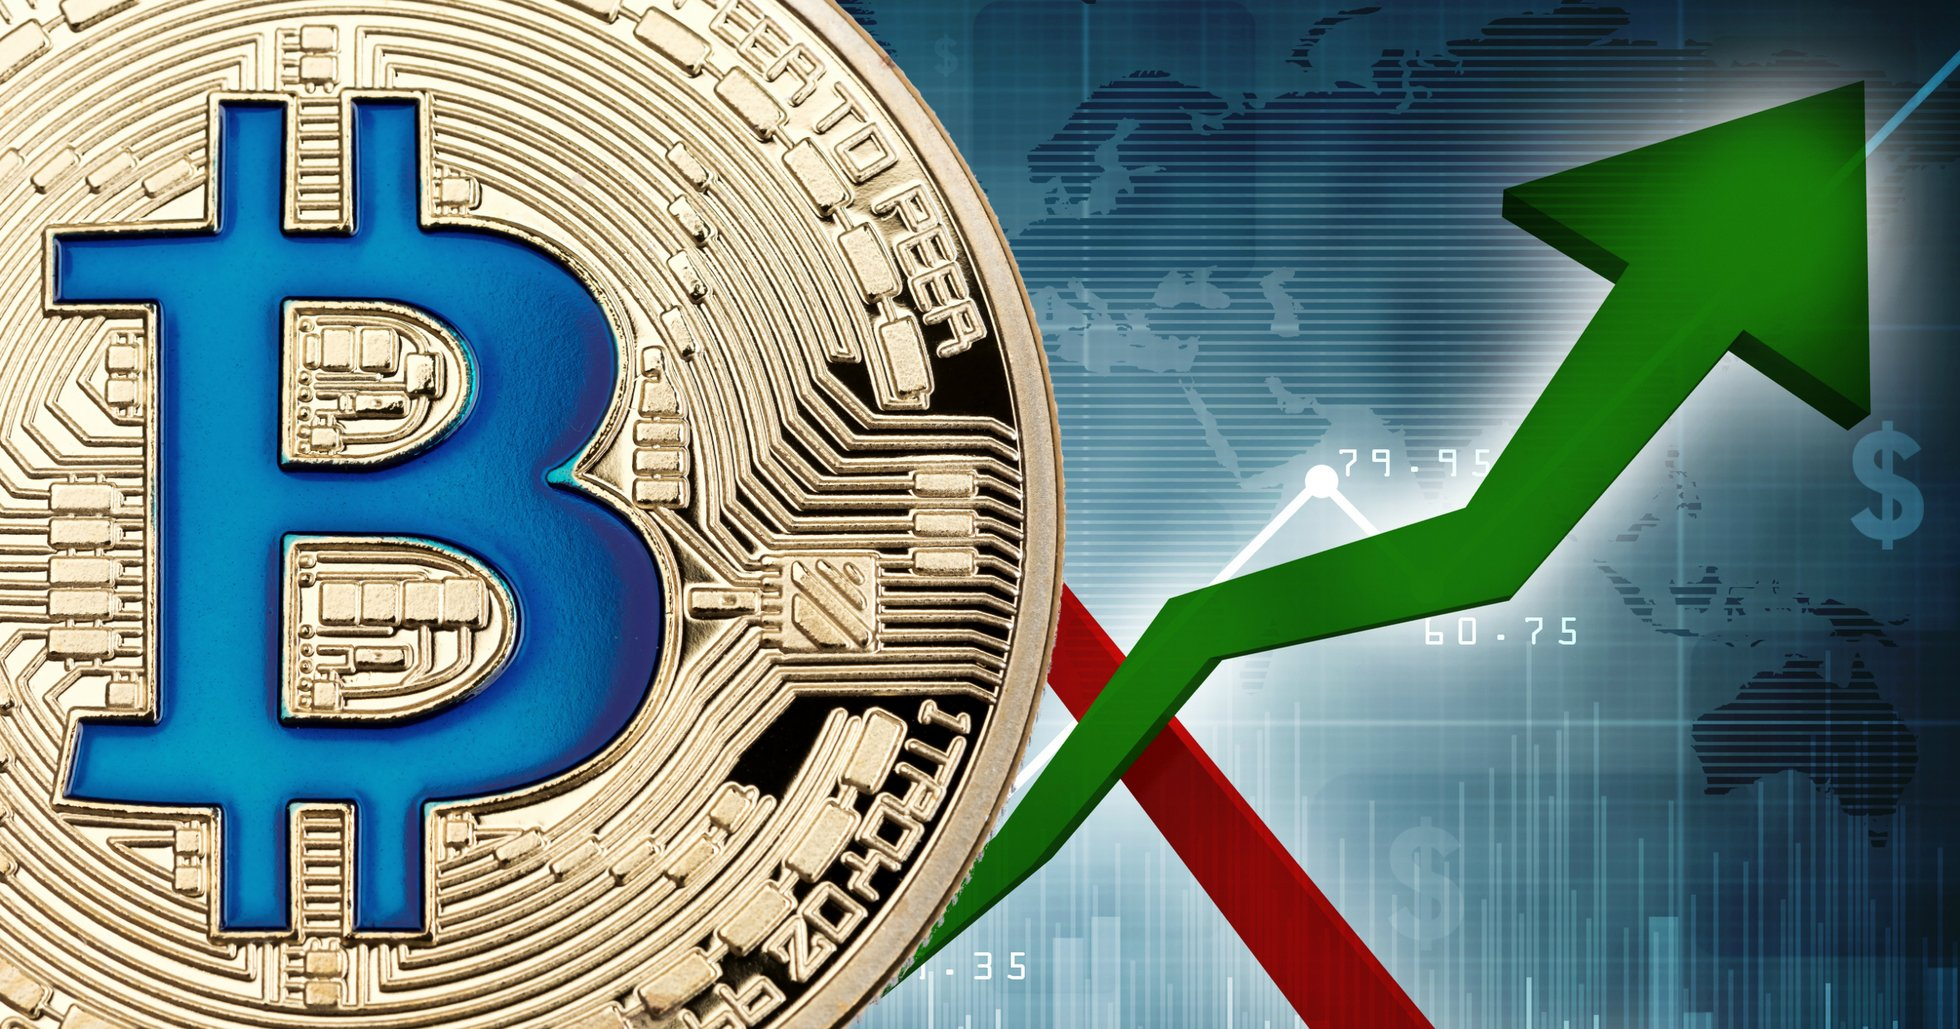 Bitcoin price increases by over $400: